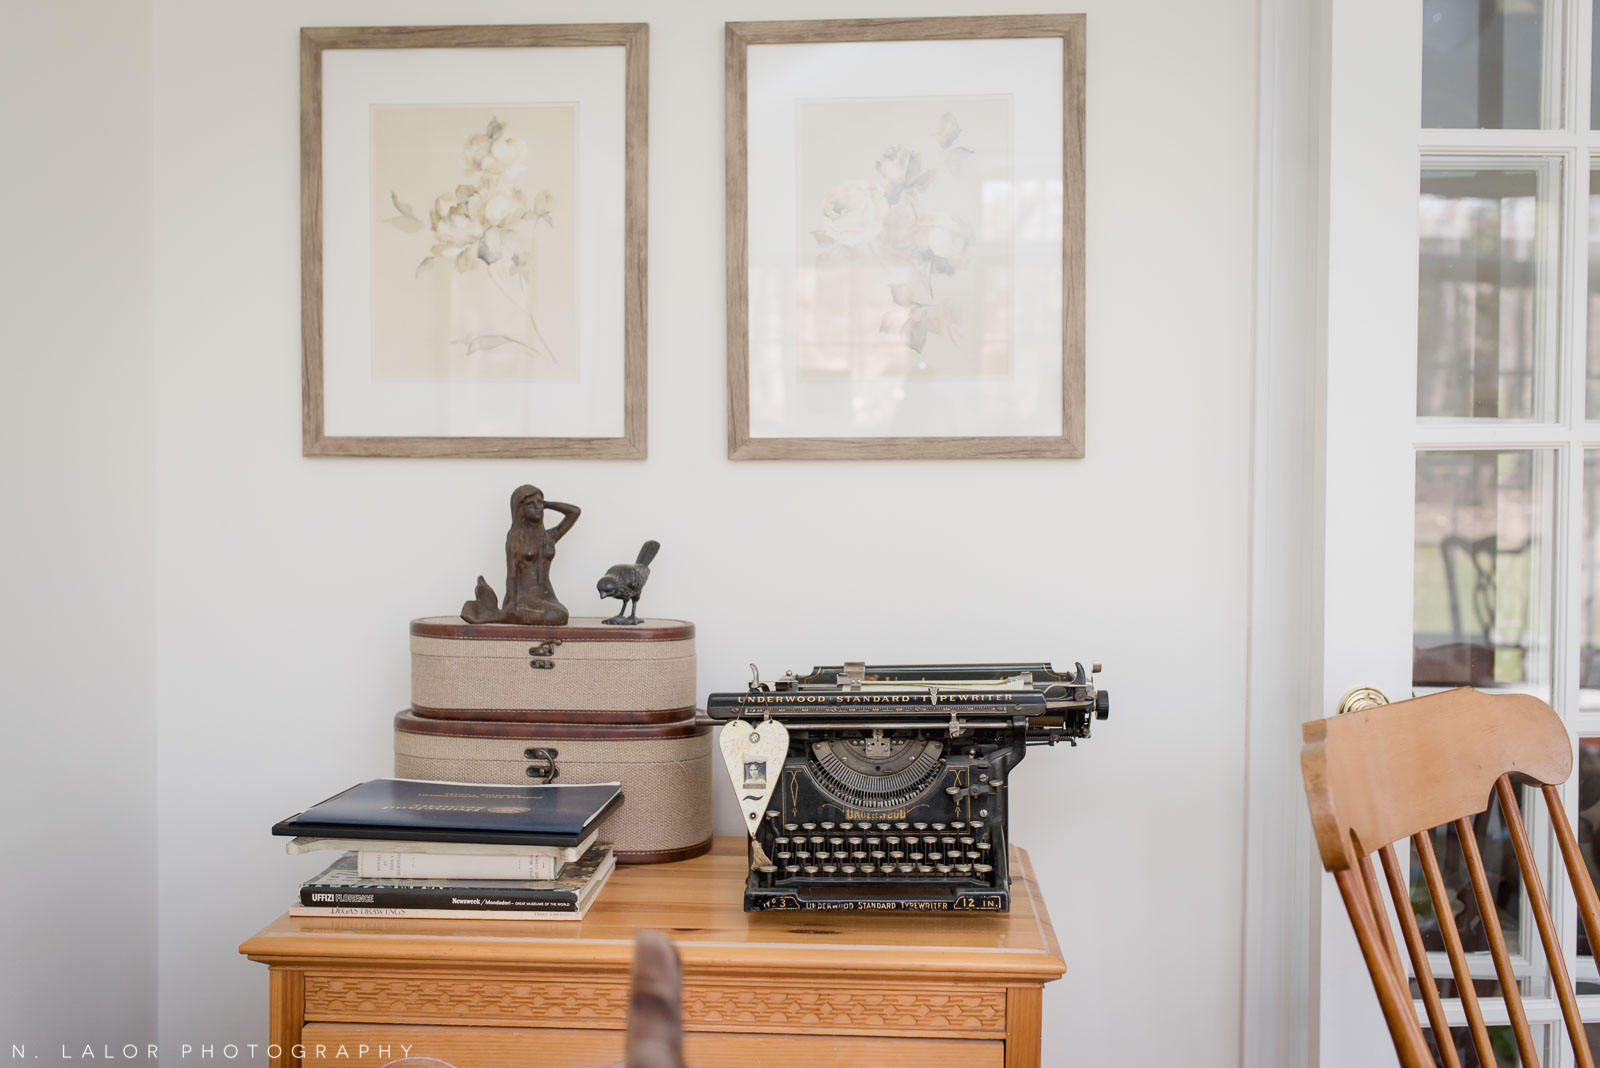 Typewriter room detail from an editorial-style family session with N. Lalor Photography.